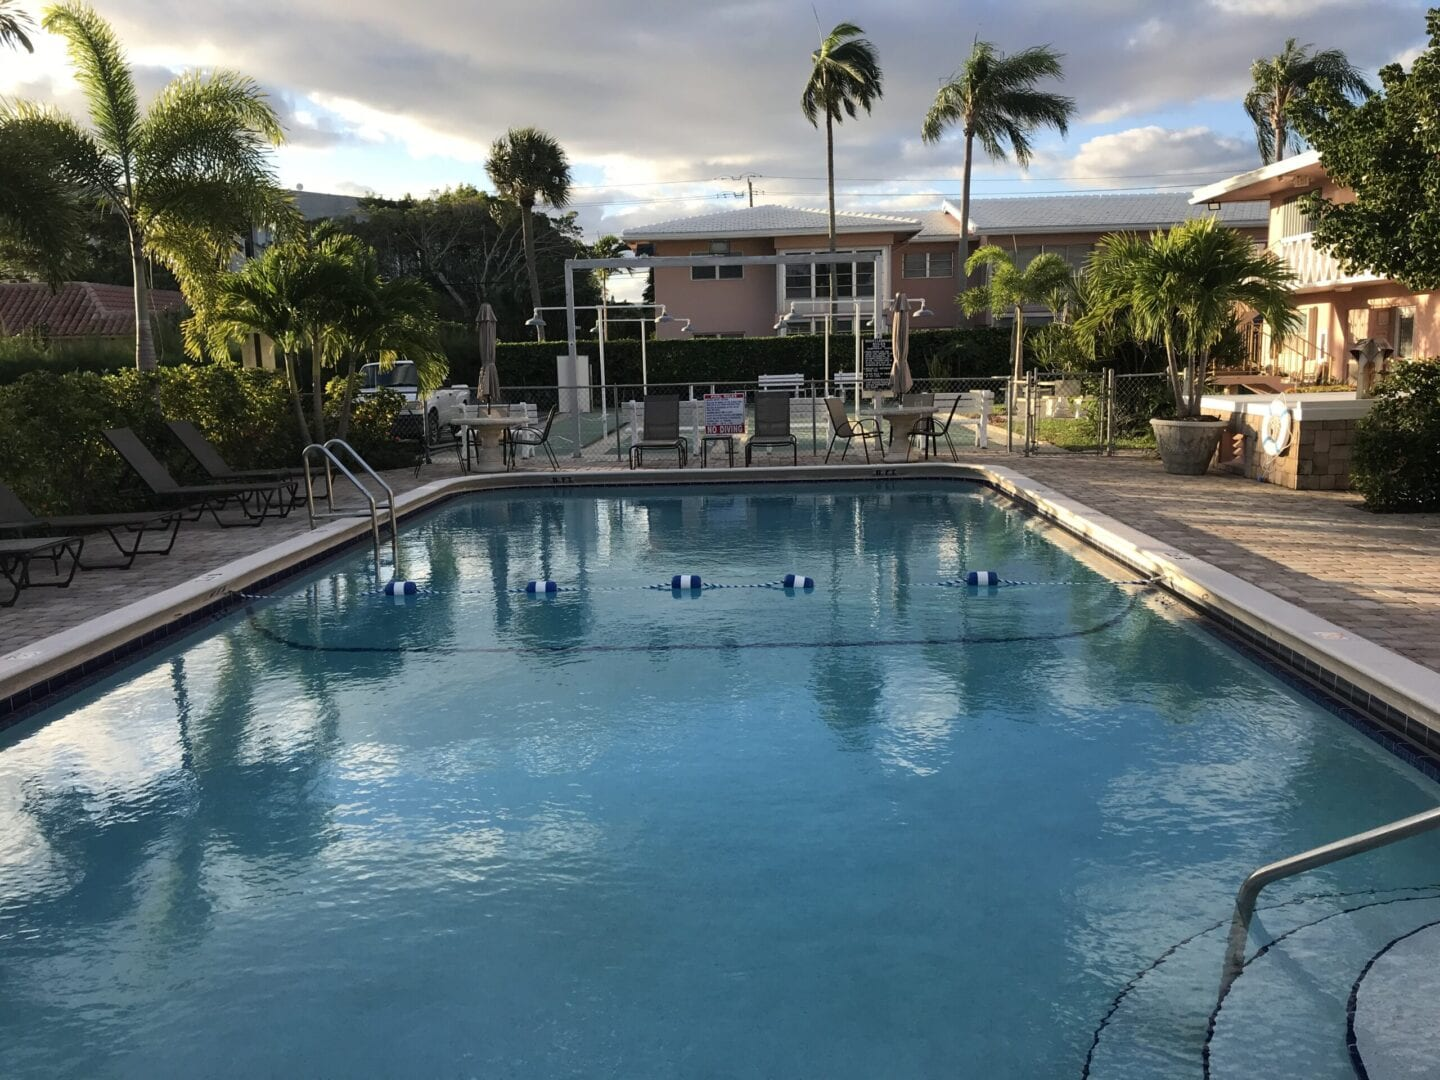 Rounded rectangle pool with a pool safety rope behind houses and palm trees